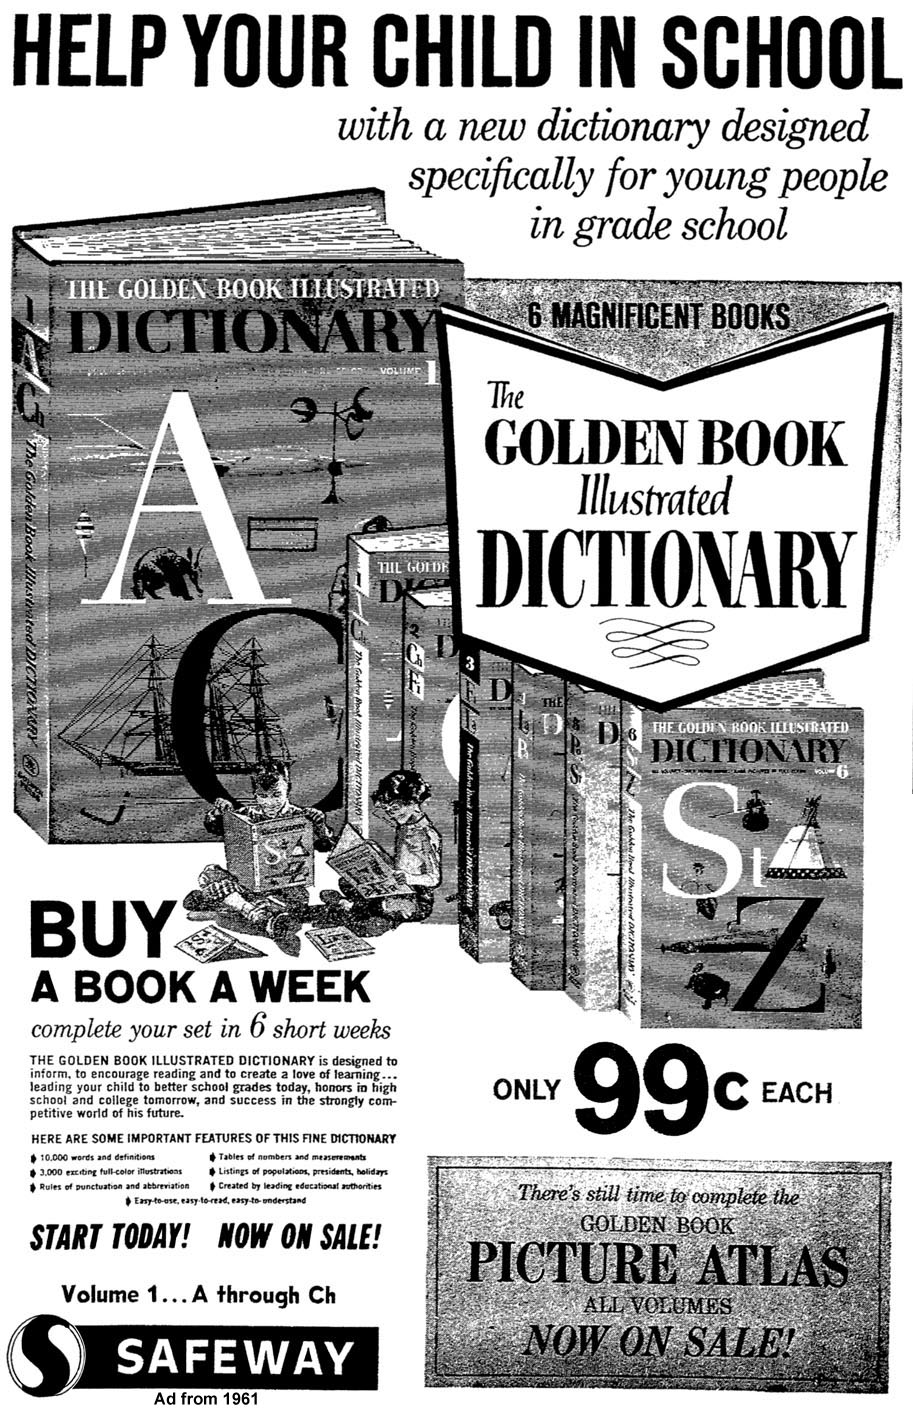 Golden Book Dictionary safeway ad